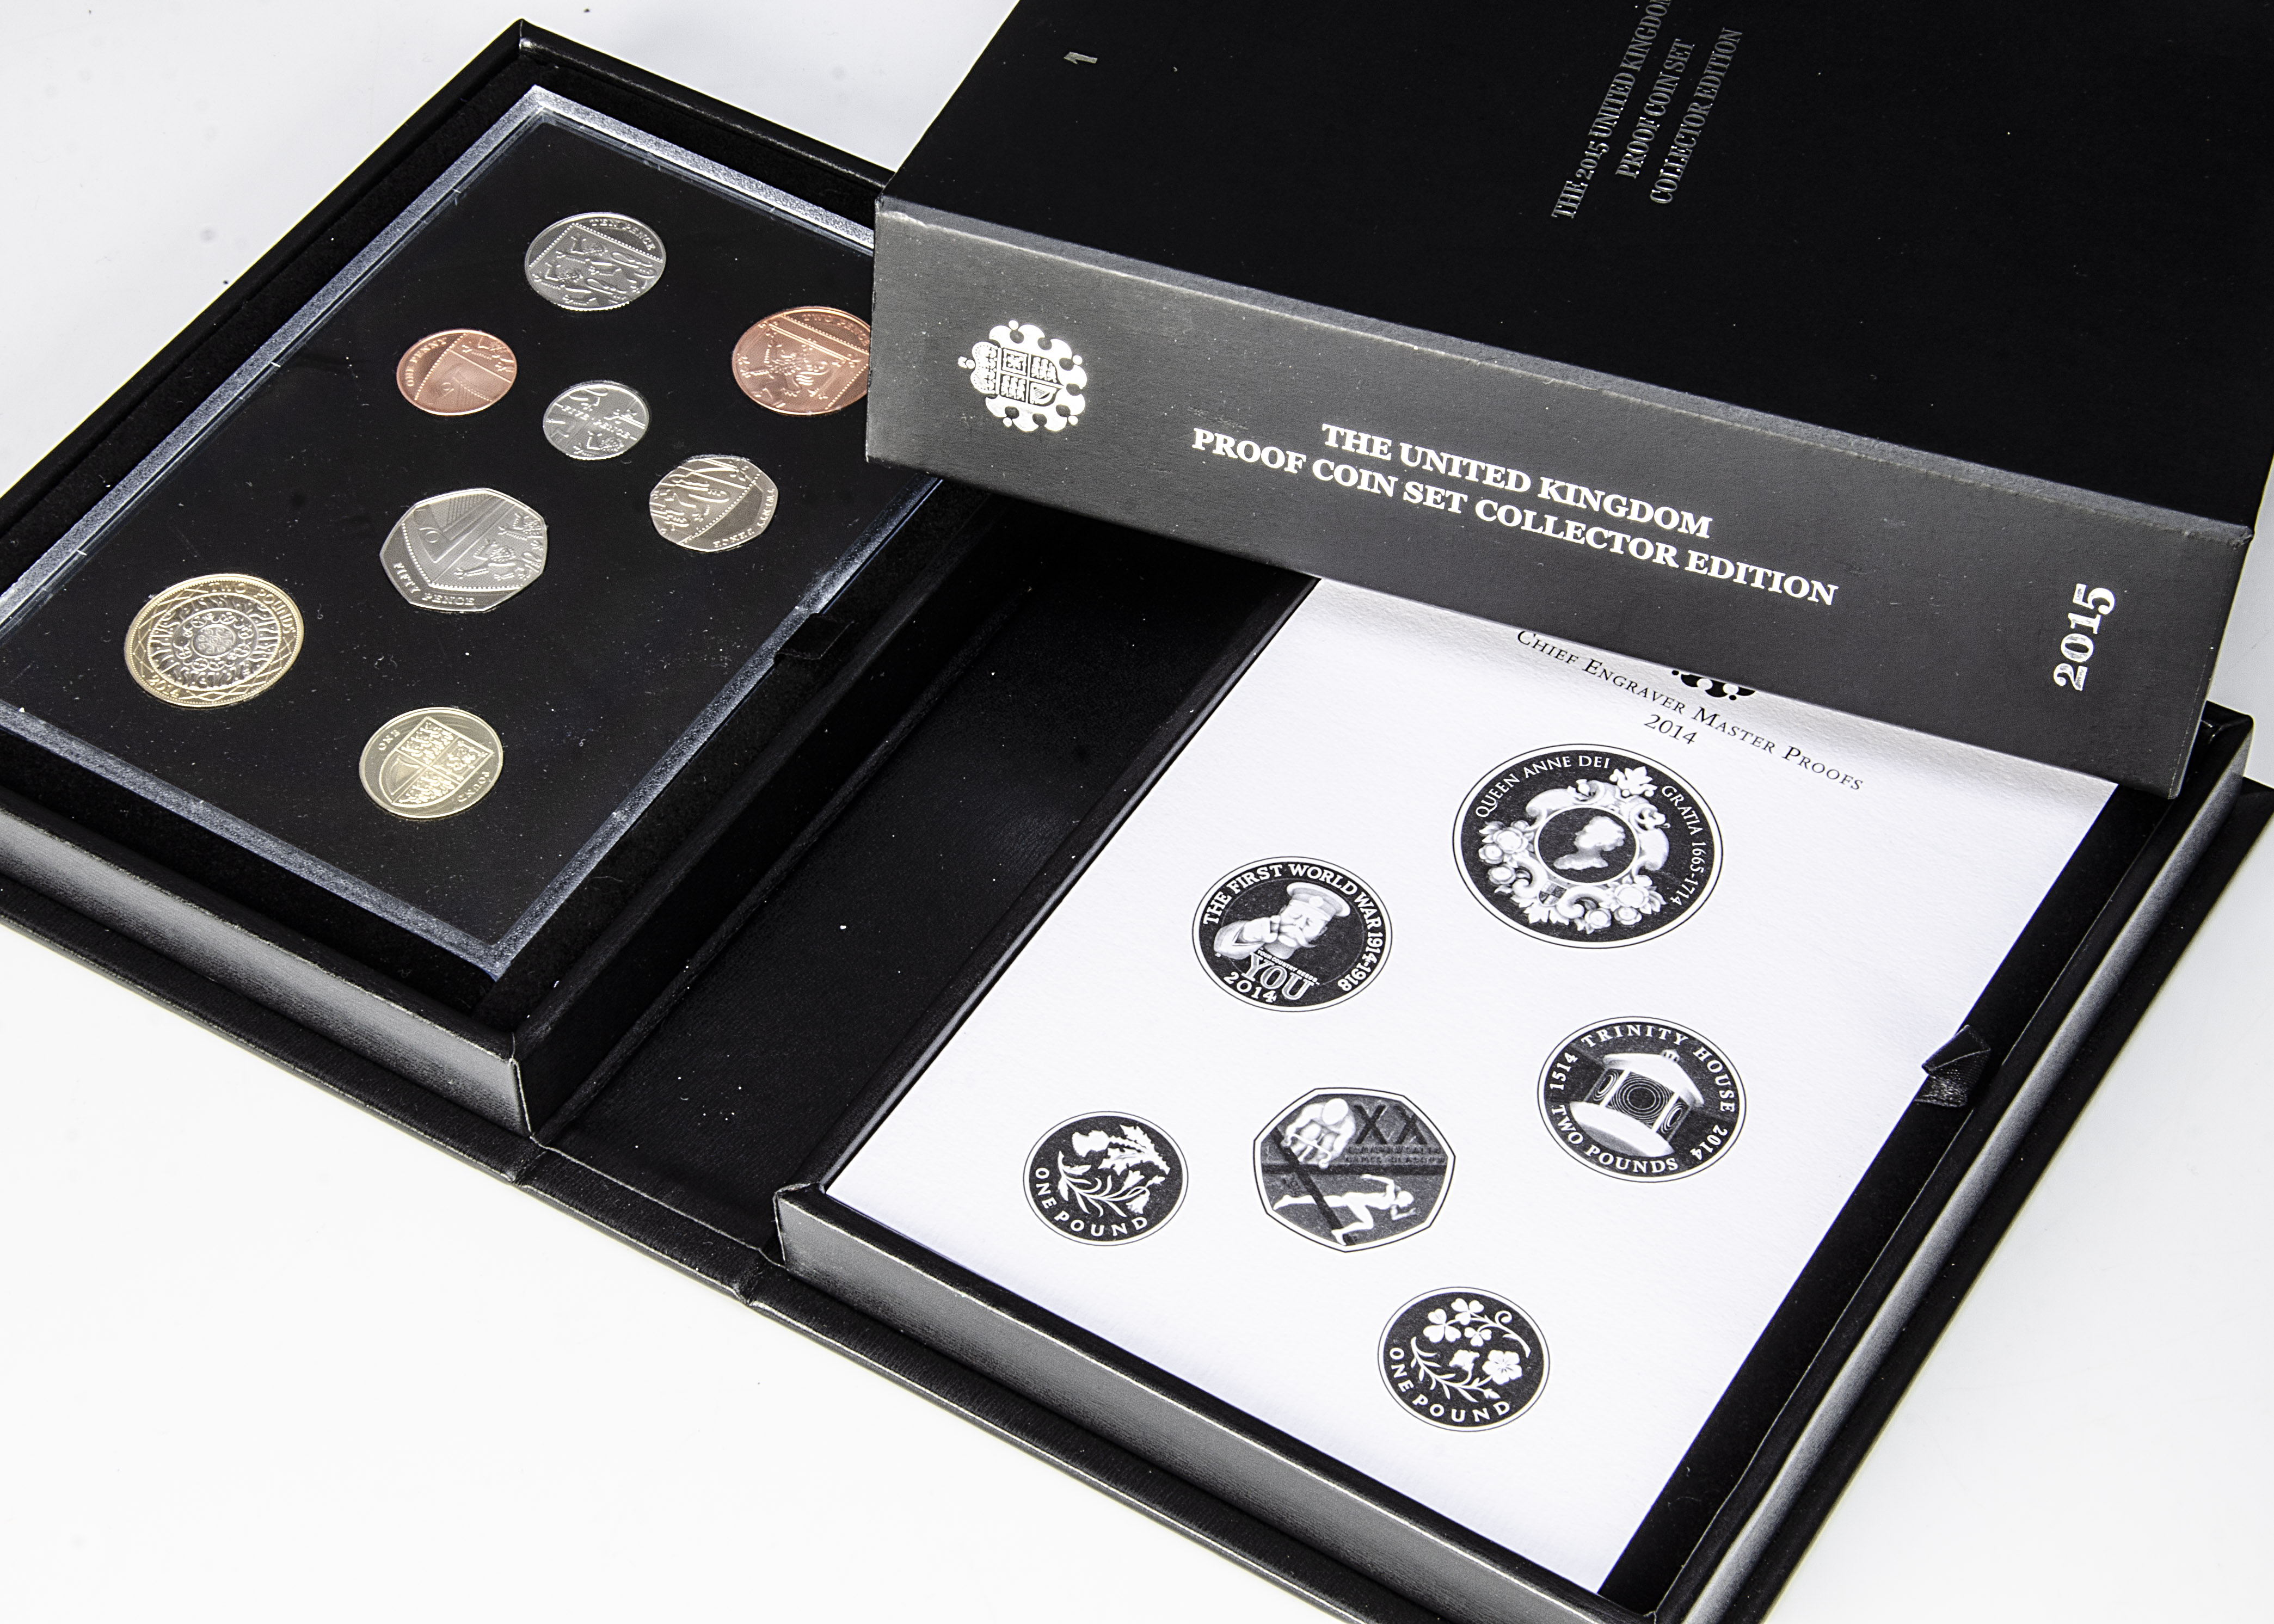 Two modern Royal Mint UK proof coin set Collector Edition sets, dated 2014 and 2015 (2)